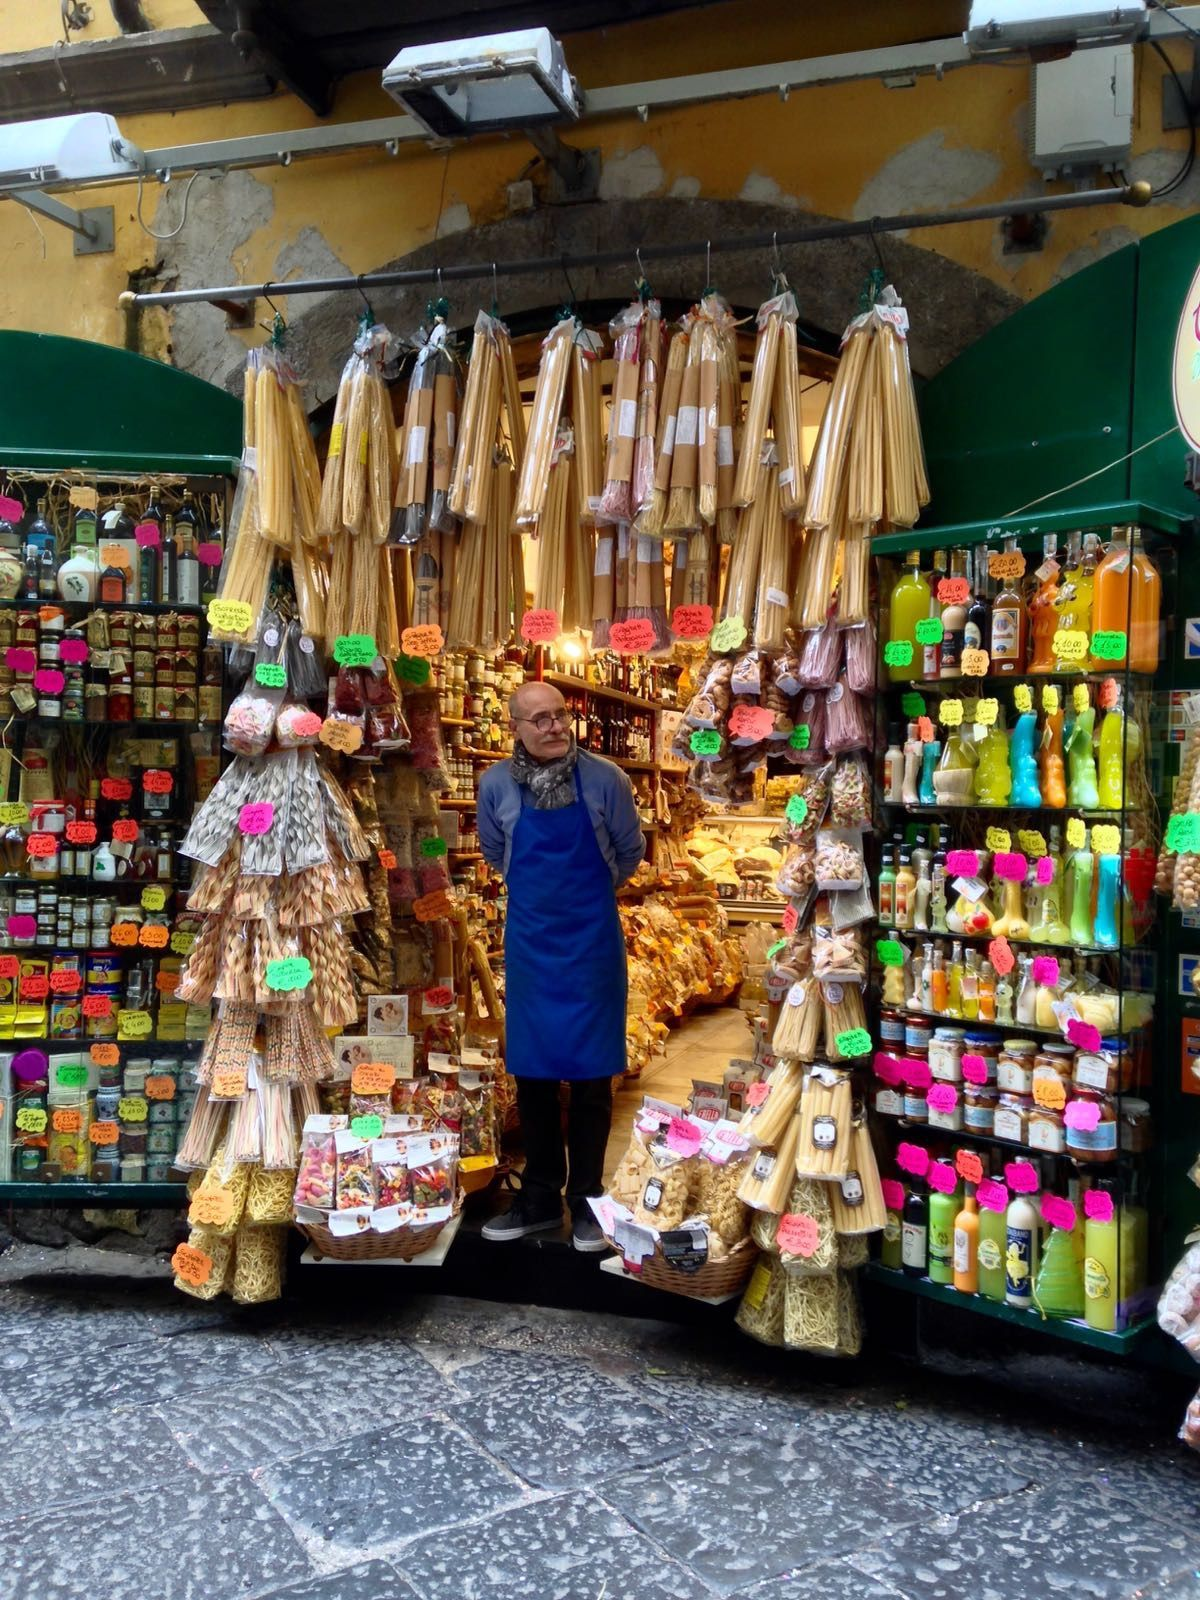 How Cute Are The Shops In Naples Iliveitaly Naples Italy Shopping In Italy Naples Italy Italy Pictures